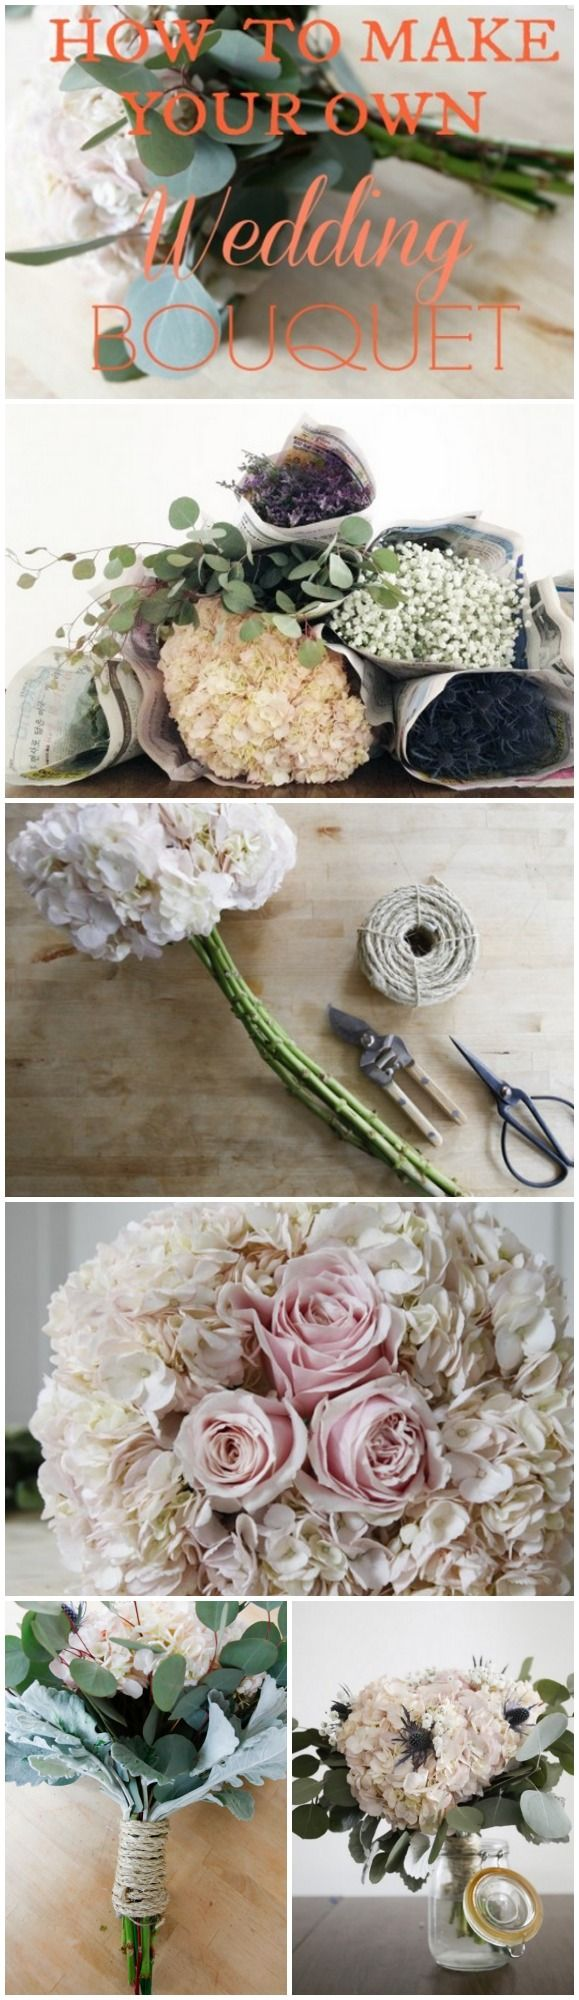 http://rusticweddingchic.com/how-to-make-your-own-wedding-bouquet